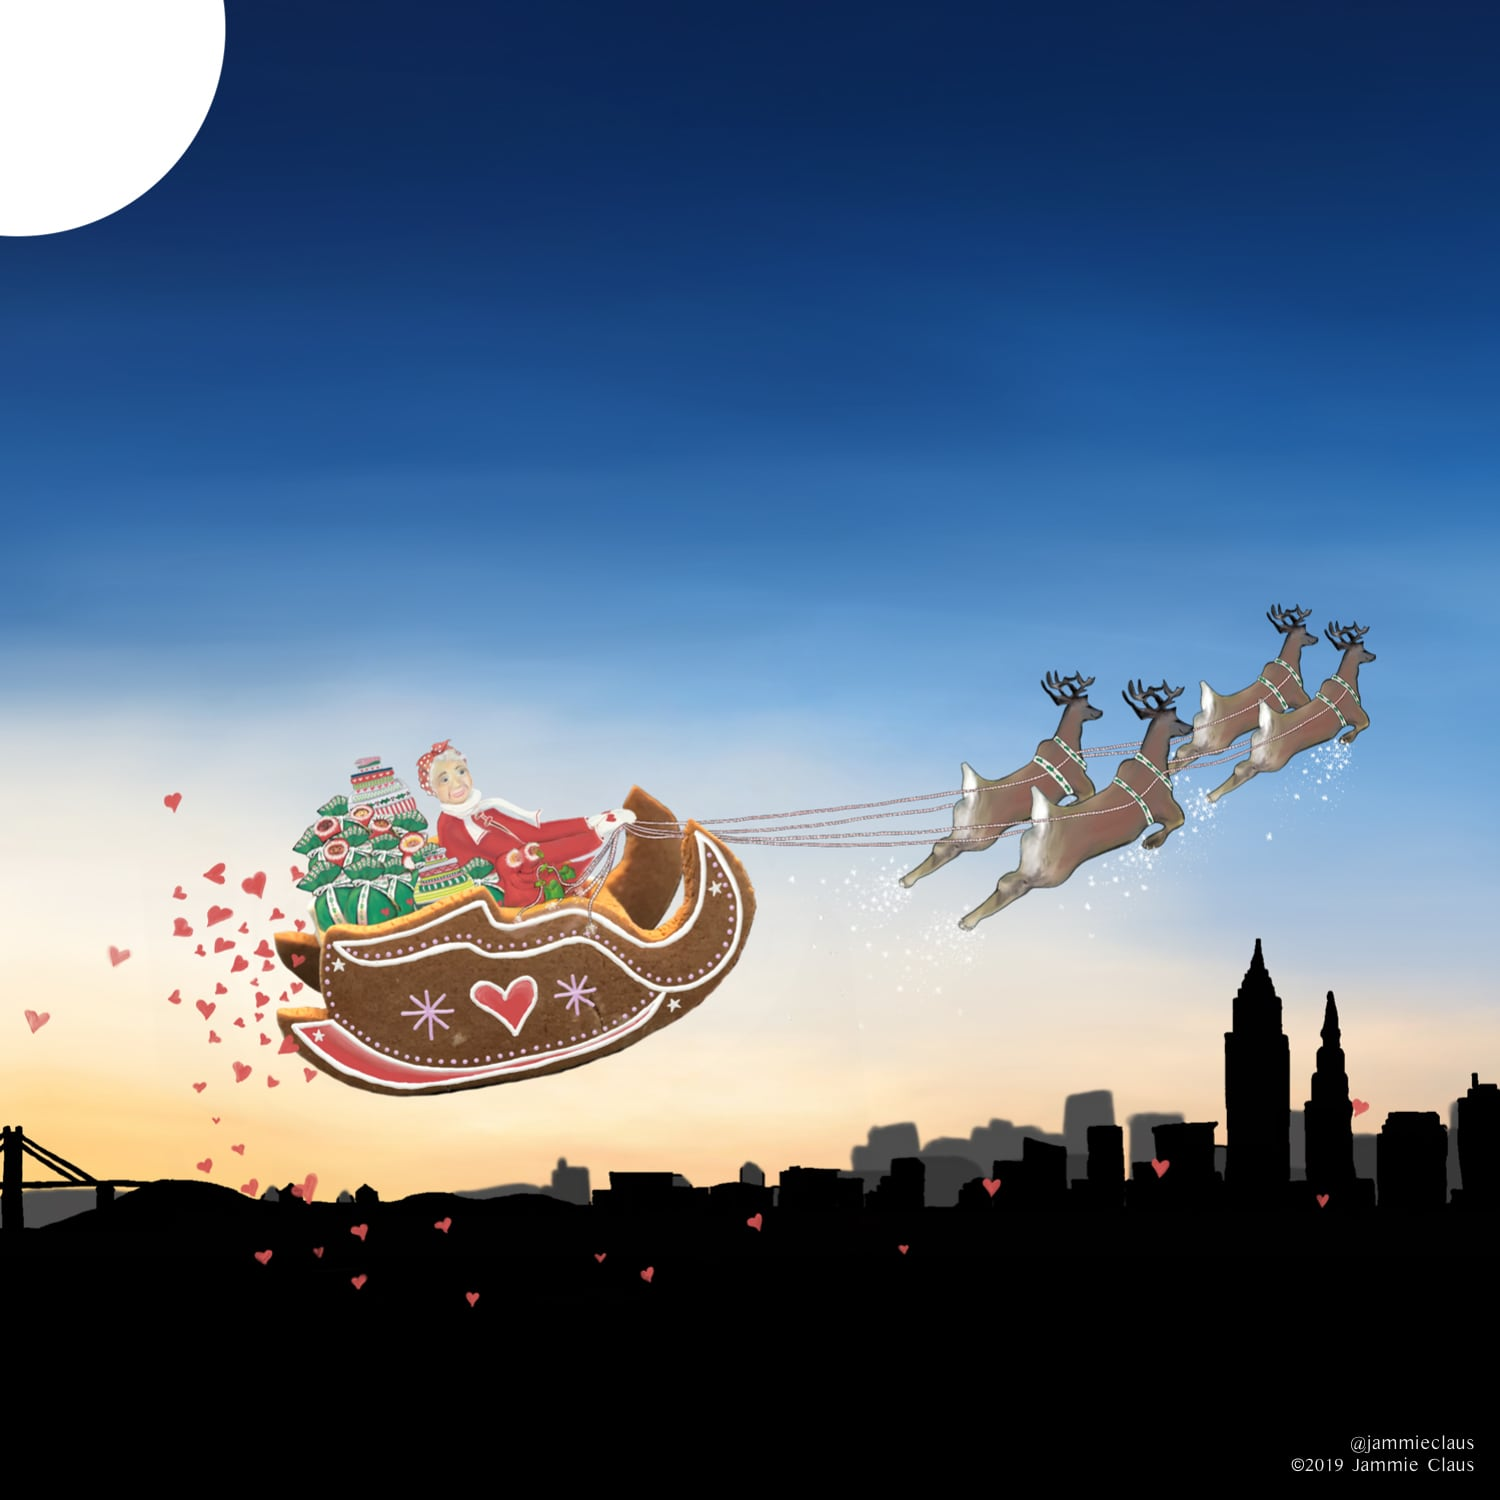 Jammie Claus and her Gingerbread Sleigh Flying in the Sky